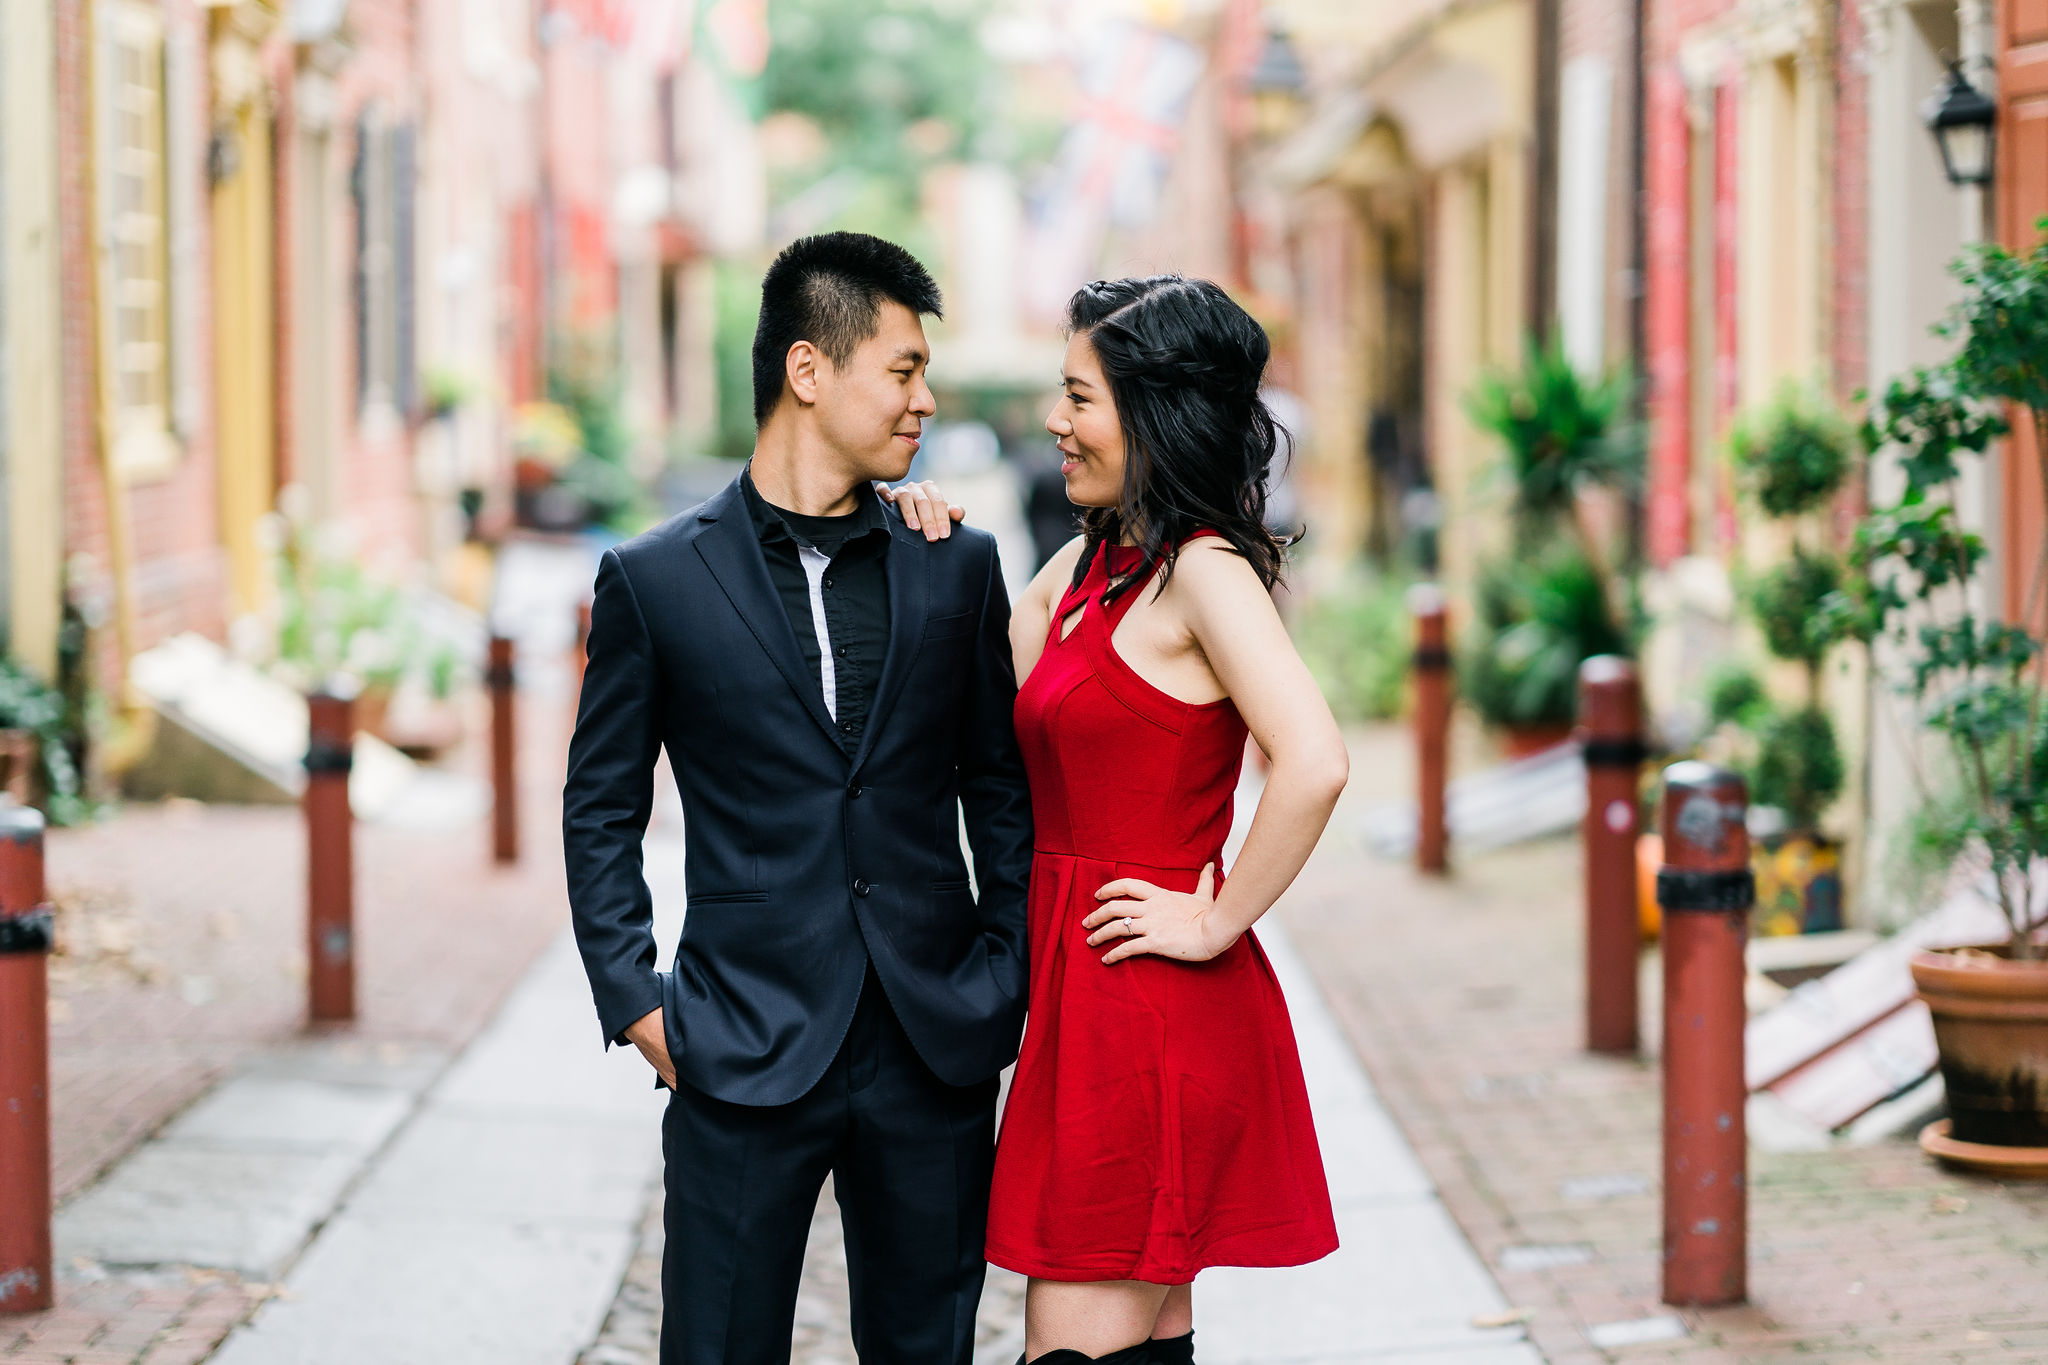 elfreths alley engagement couple philadelphia